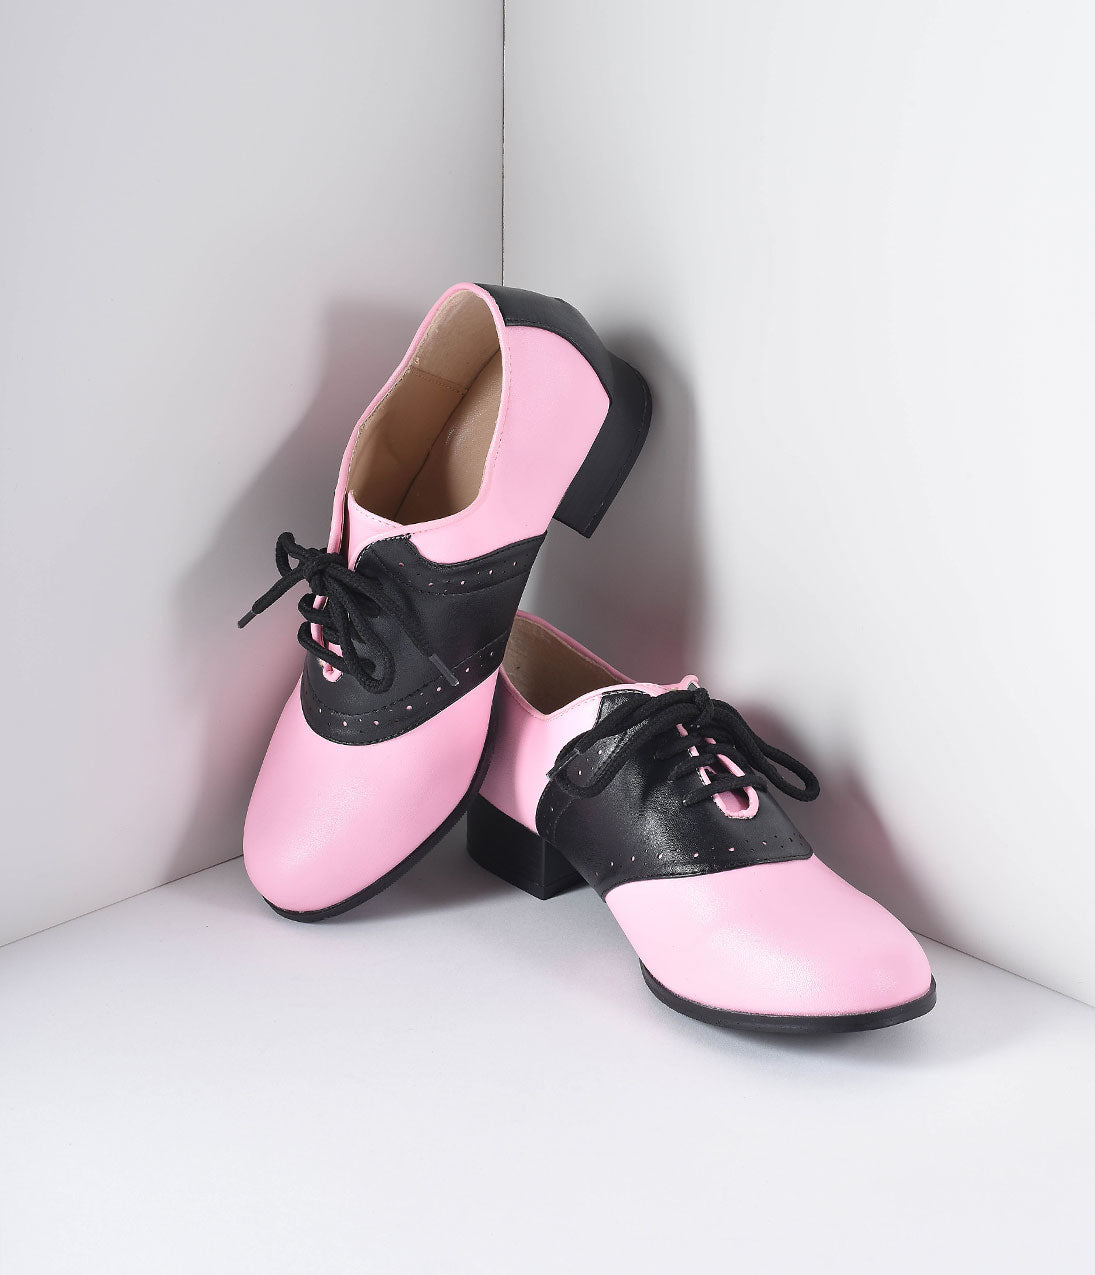 Saddle Shoes History Retro Style Pink  Black Two Tone Saddle Shoes $42.00 AT vintagedancer.com